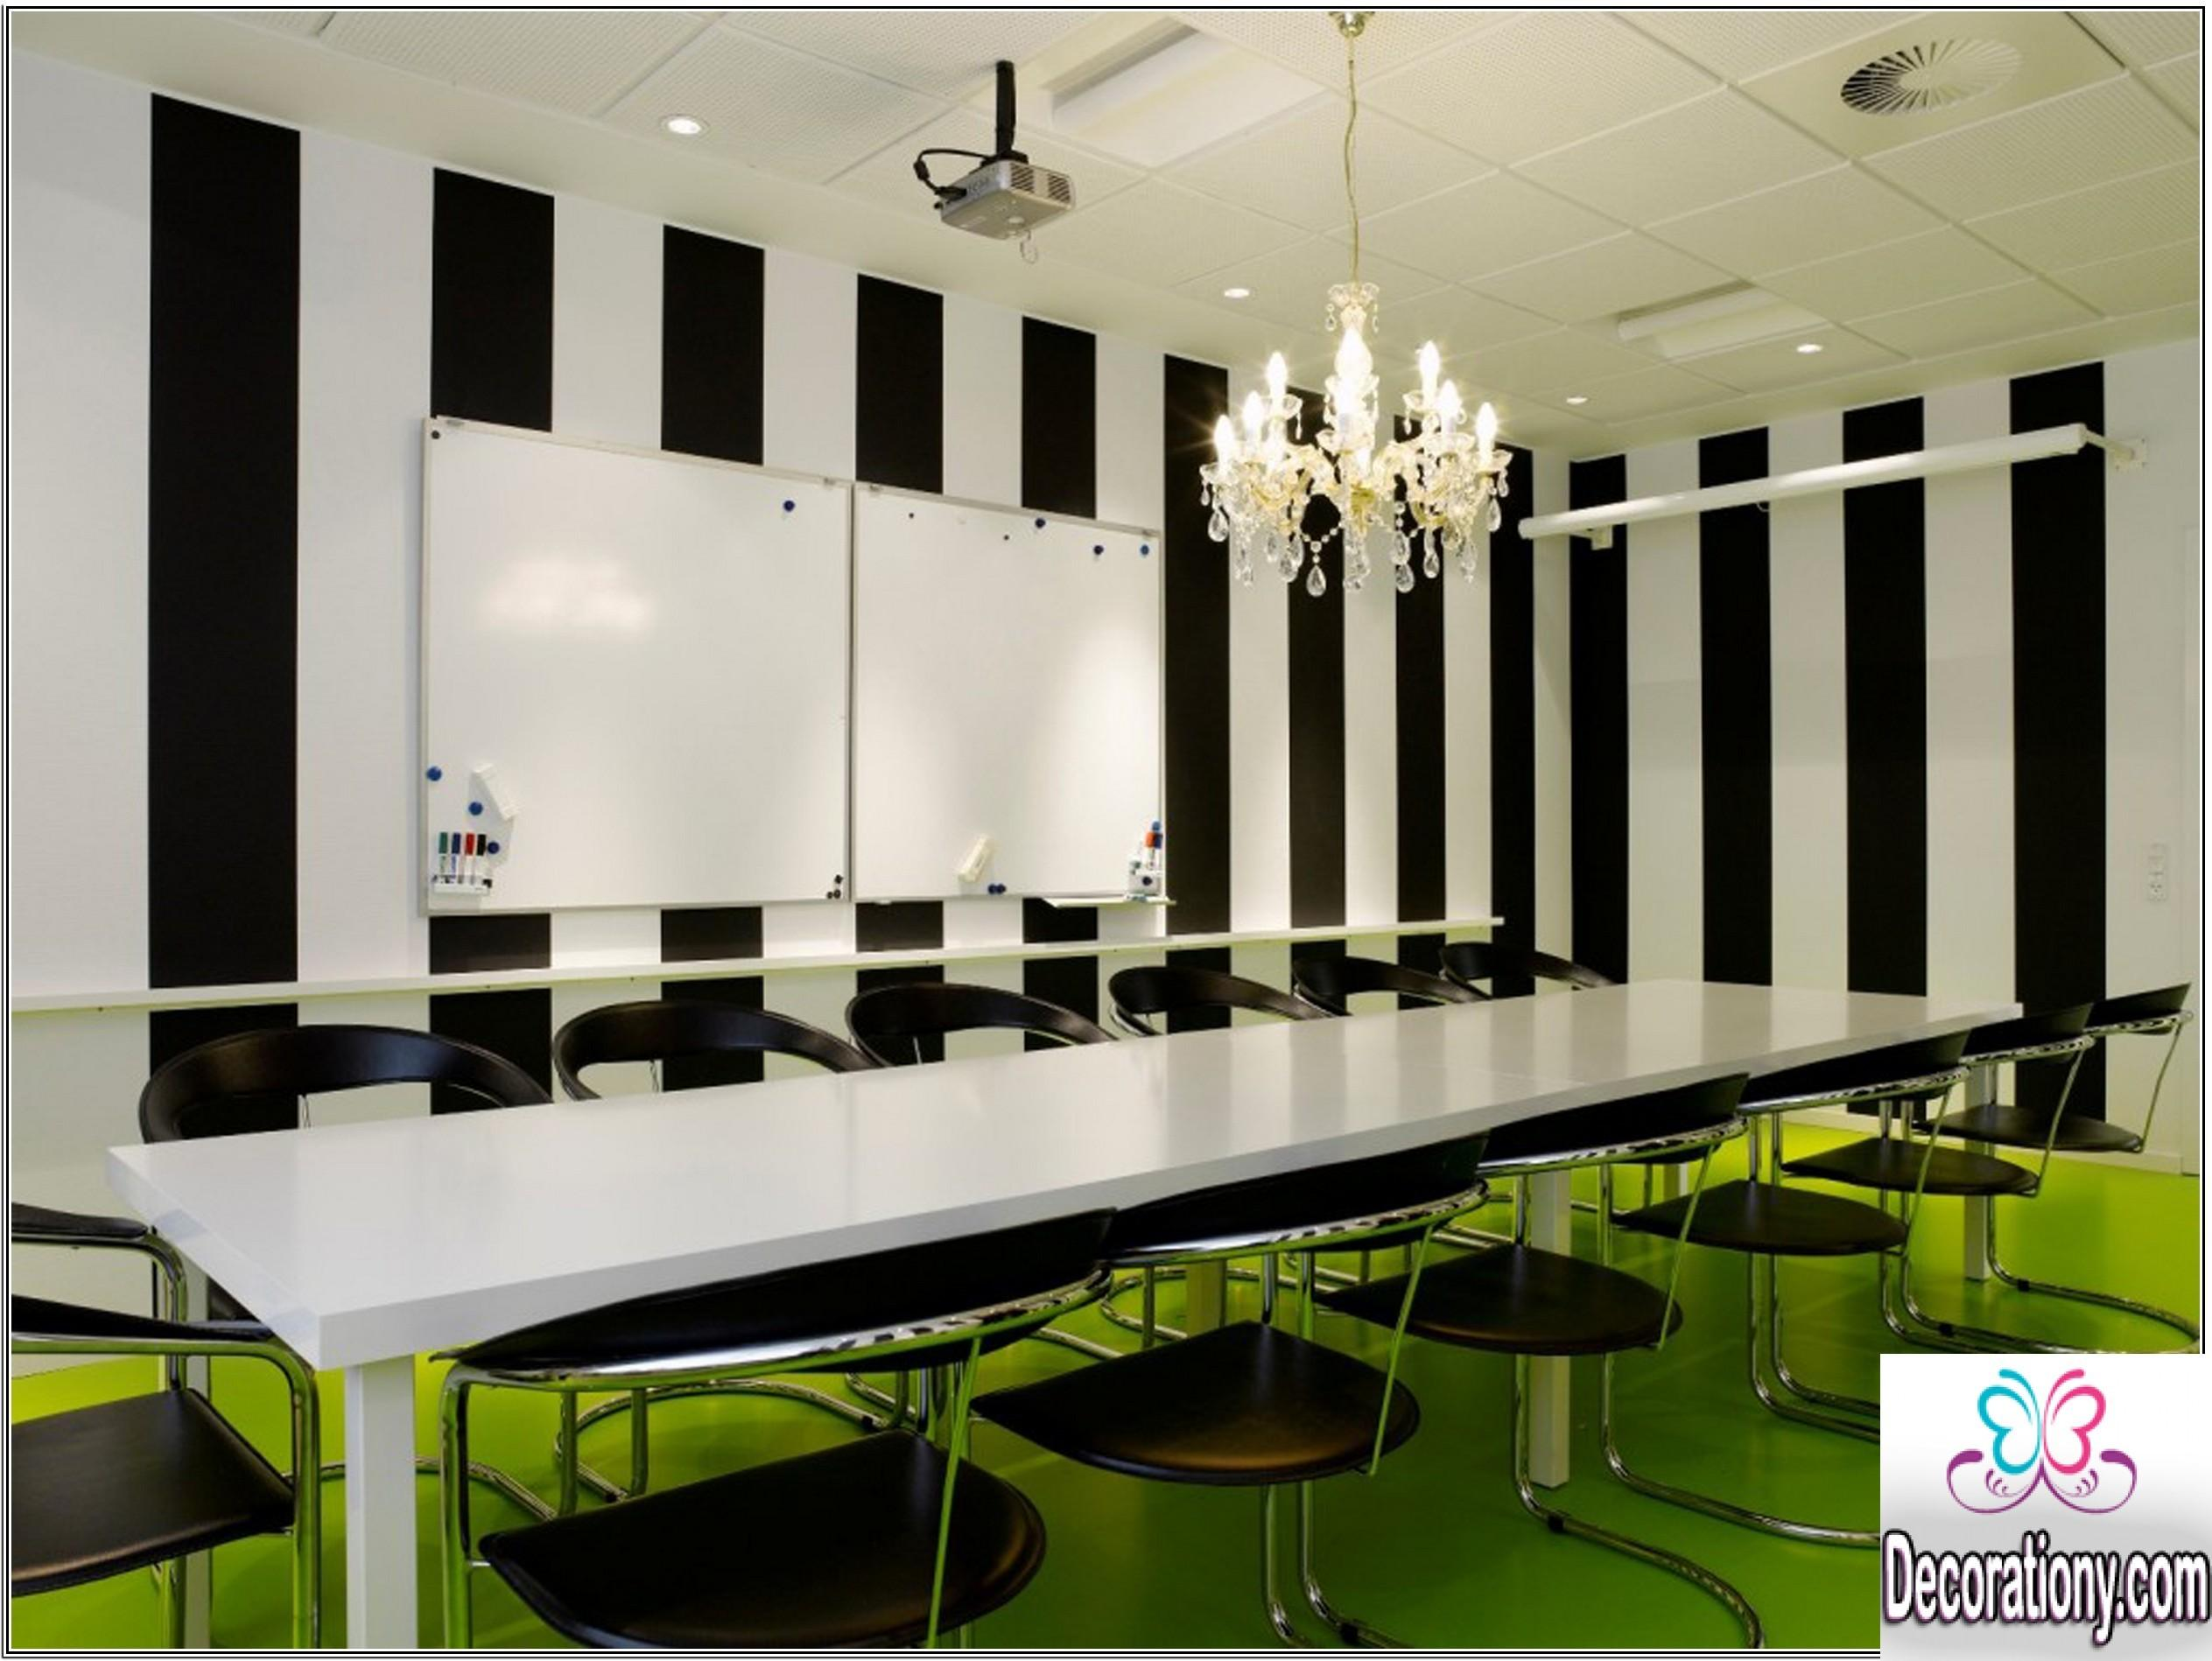 Splendid Office Conference Room Design Ideas Decorationy